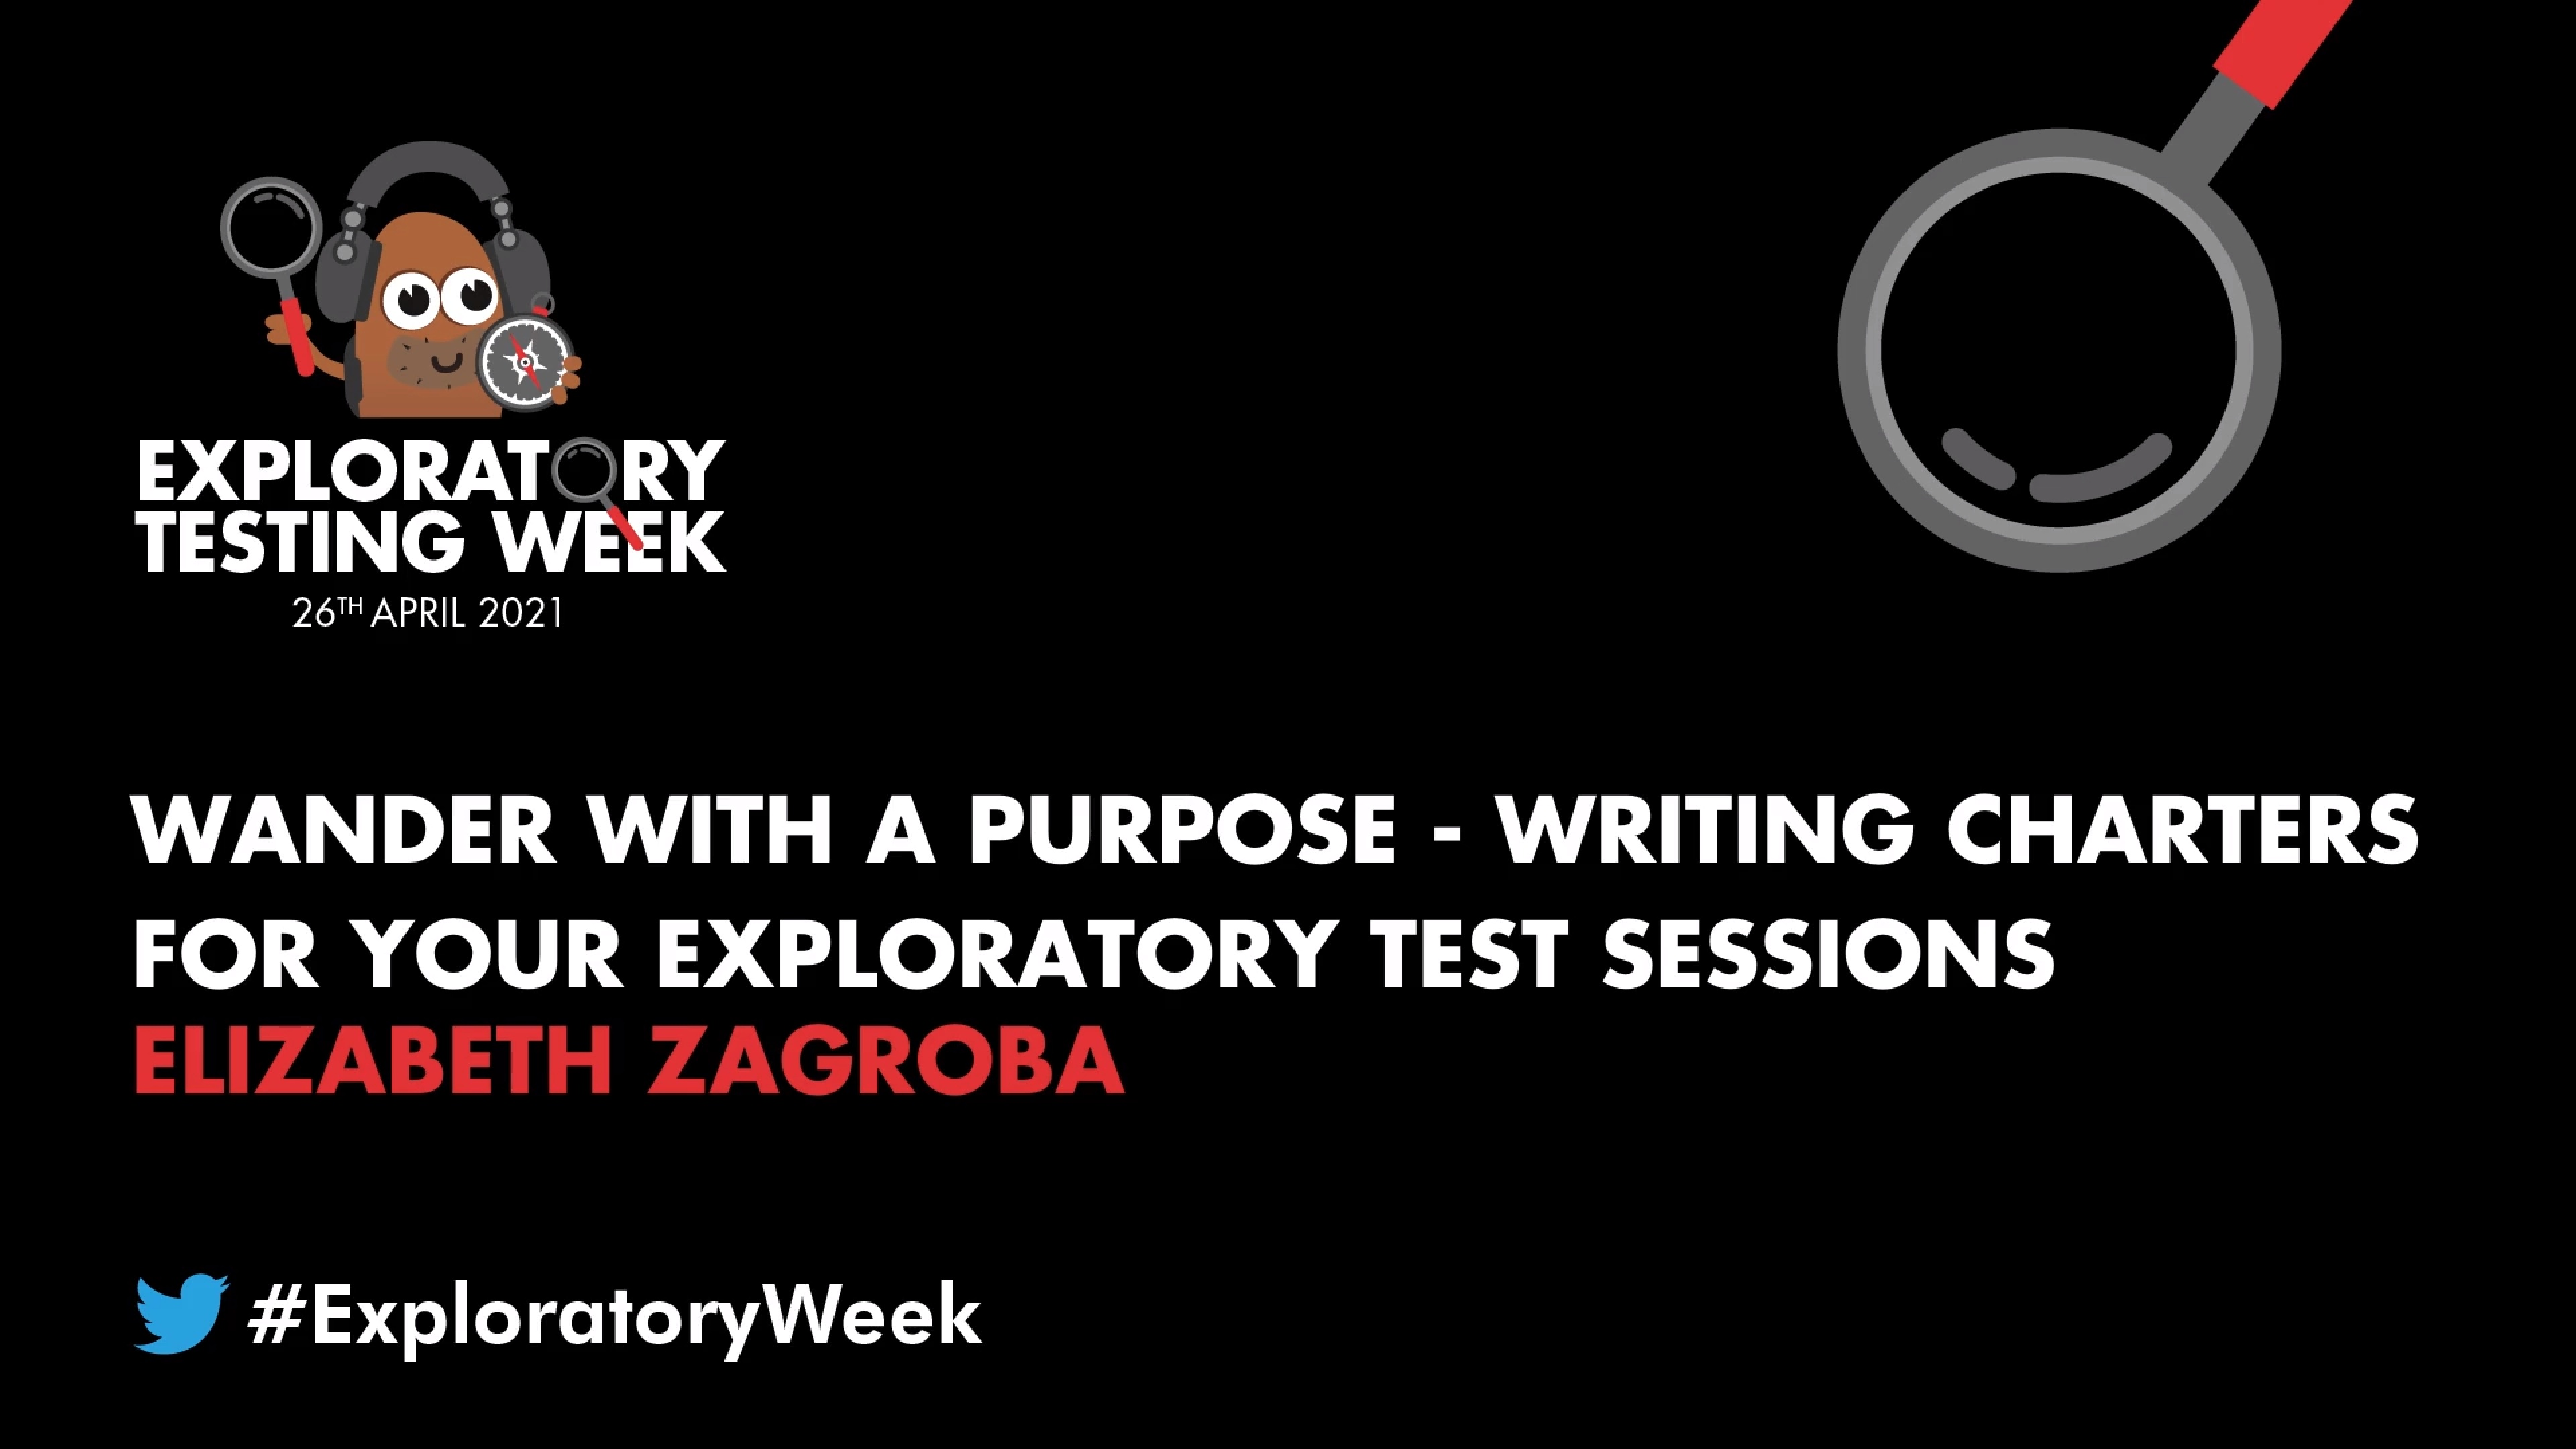 Wander with a Purpose: Writing Charters For Your Exploratory Test Sessions with Elizabeth Zagroba